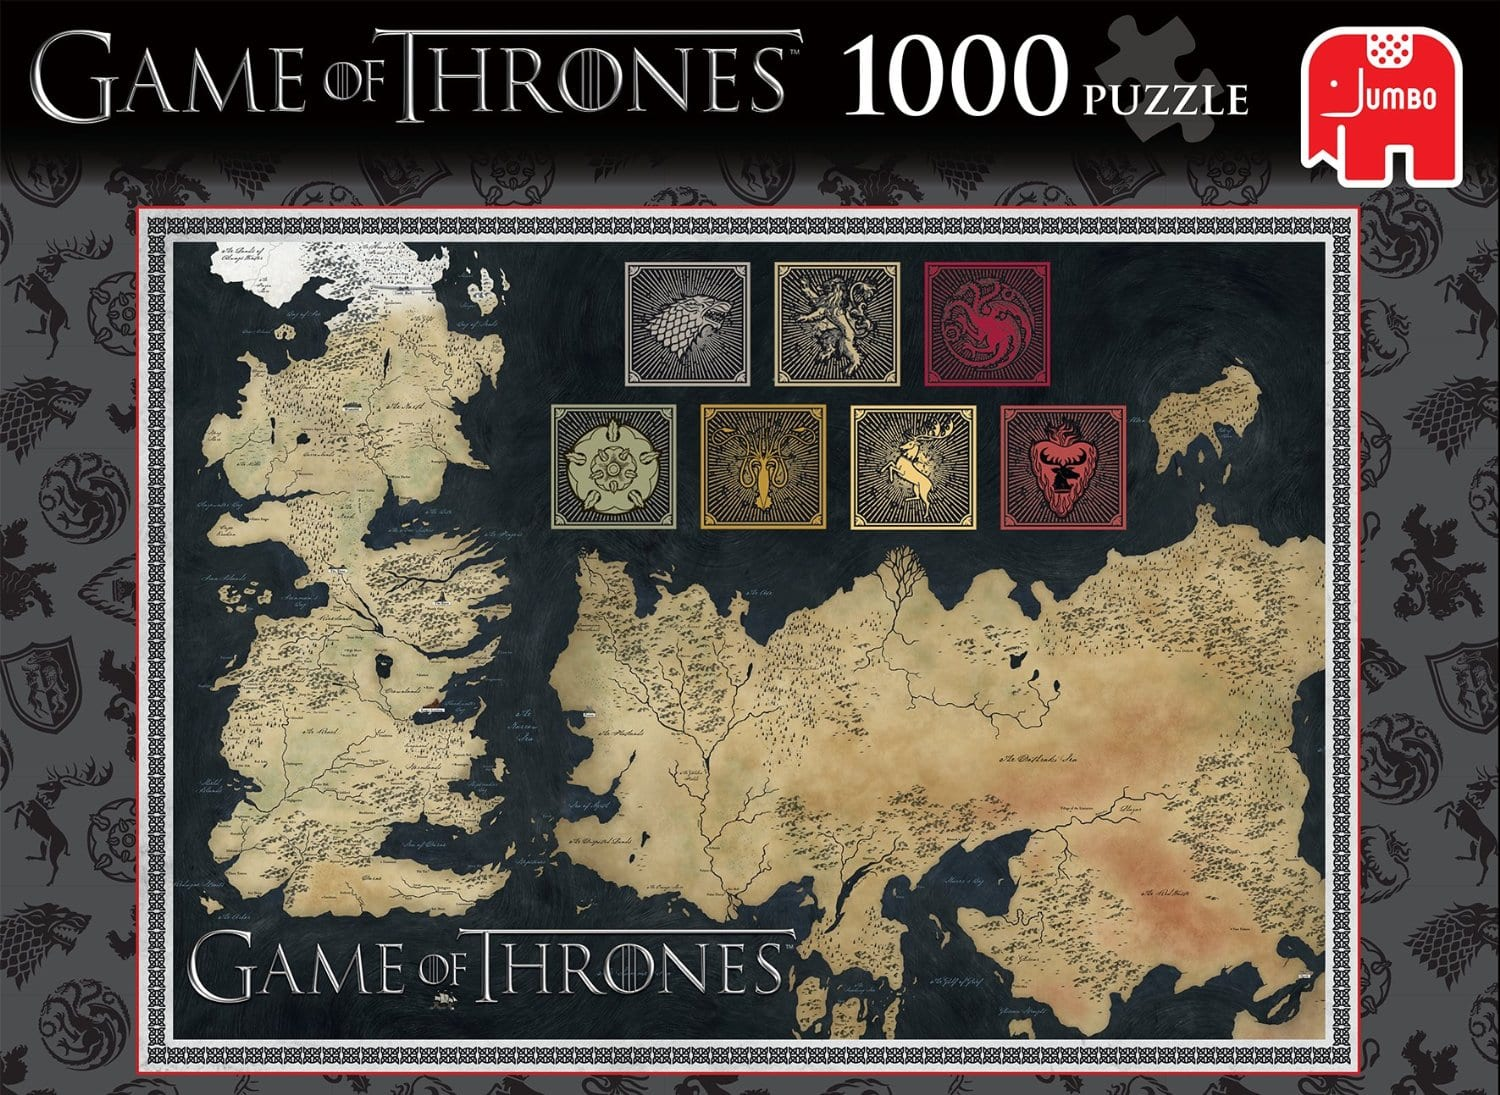 Game of thrones map of the known world jigsaw puzzle 1000 pieces thrones map of the known world jigsaw puzzle 1000 pieces gumiabroncs Gallery